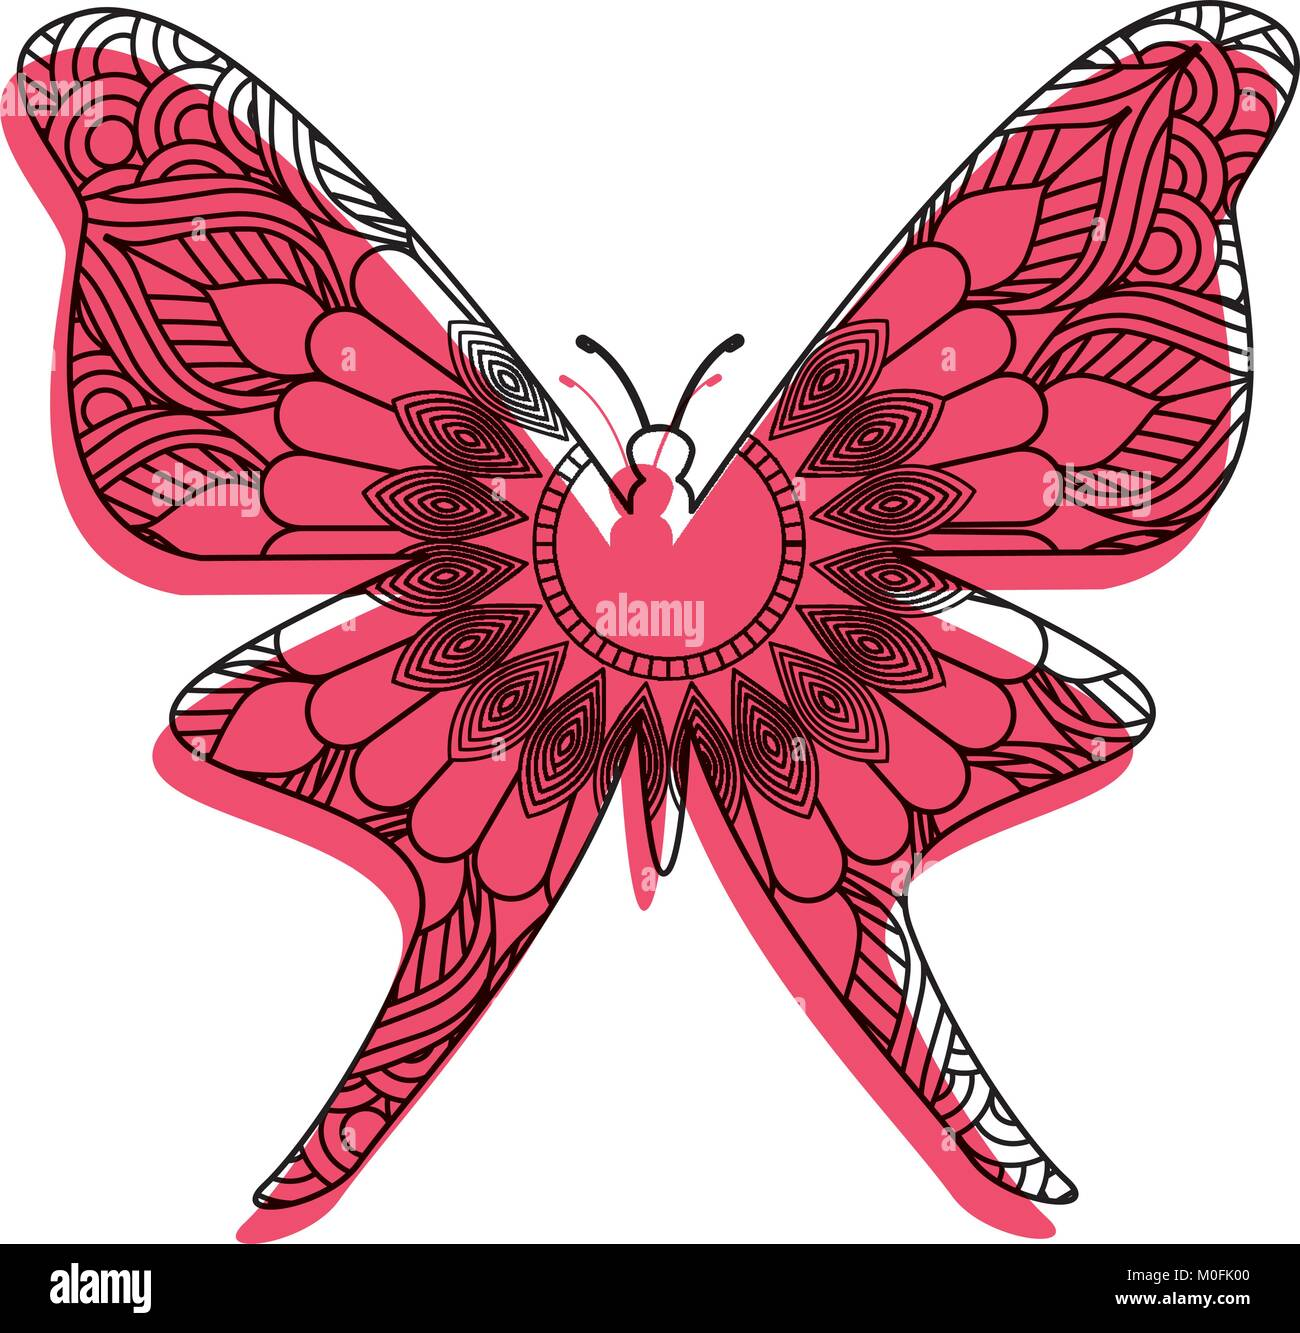 Adult Coloring Pages Stock Photos & Adult Coloring Pages Stock ...